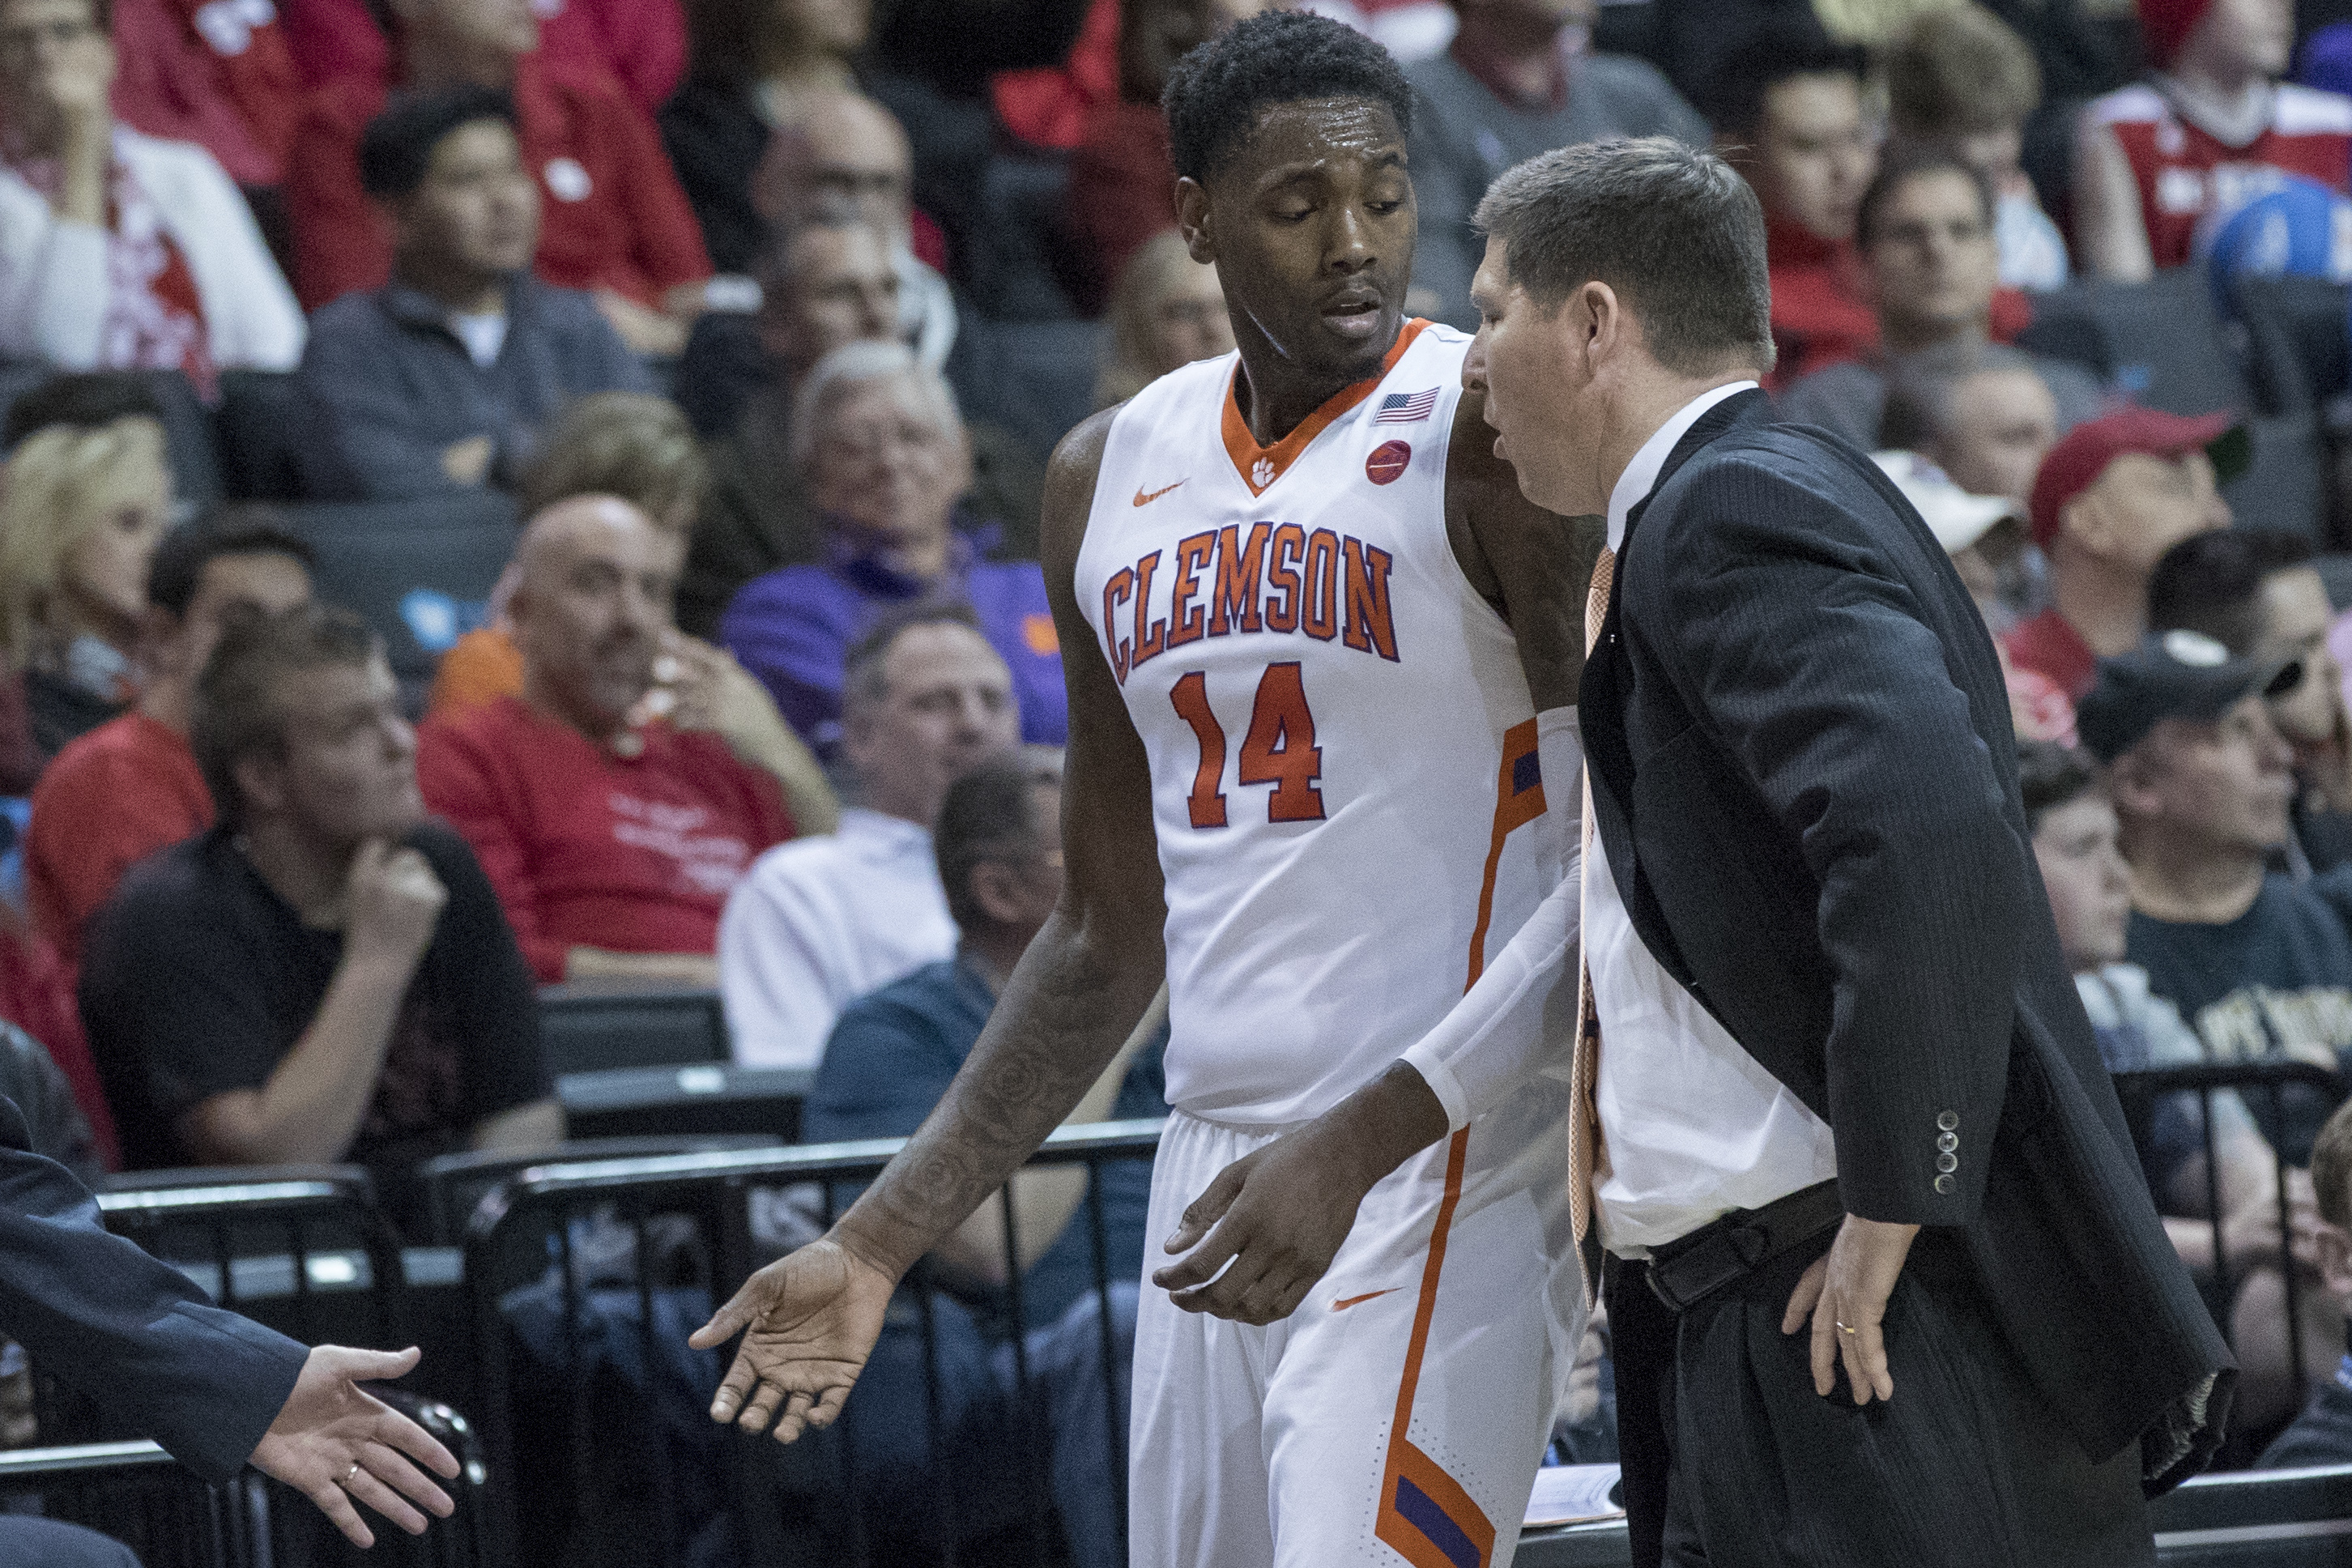 0a74e4509cc2 Clemson was one of several college basketball programs in Barcelona when  Thursday s apparent terrorist attack occurred. (AP)